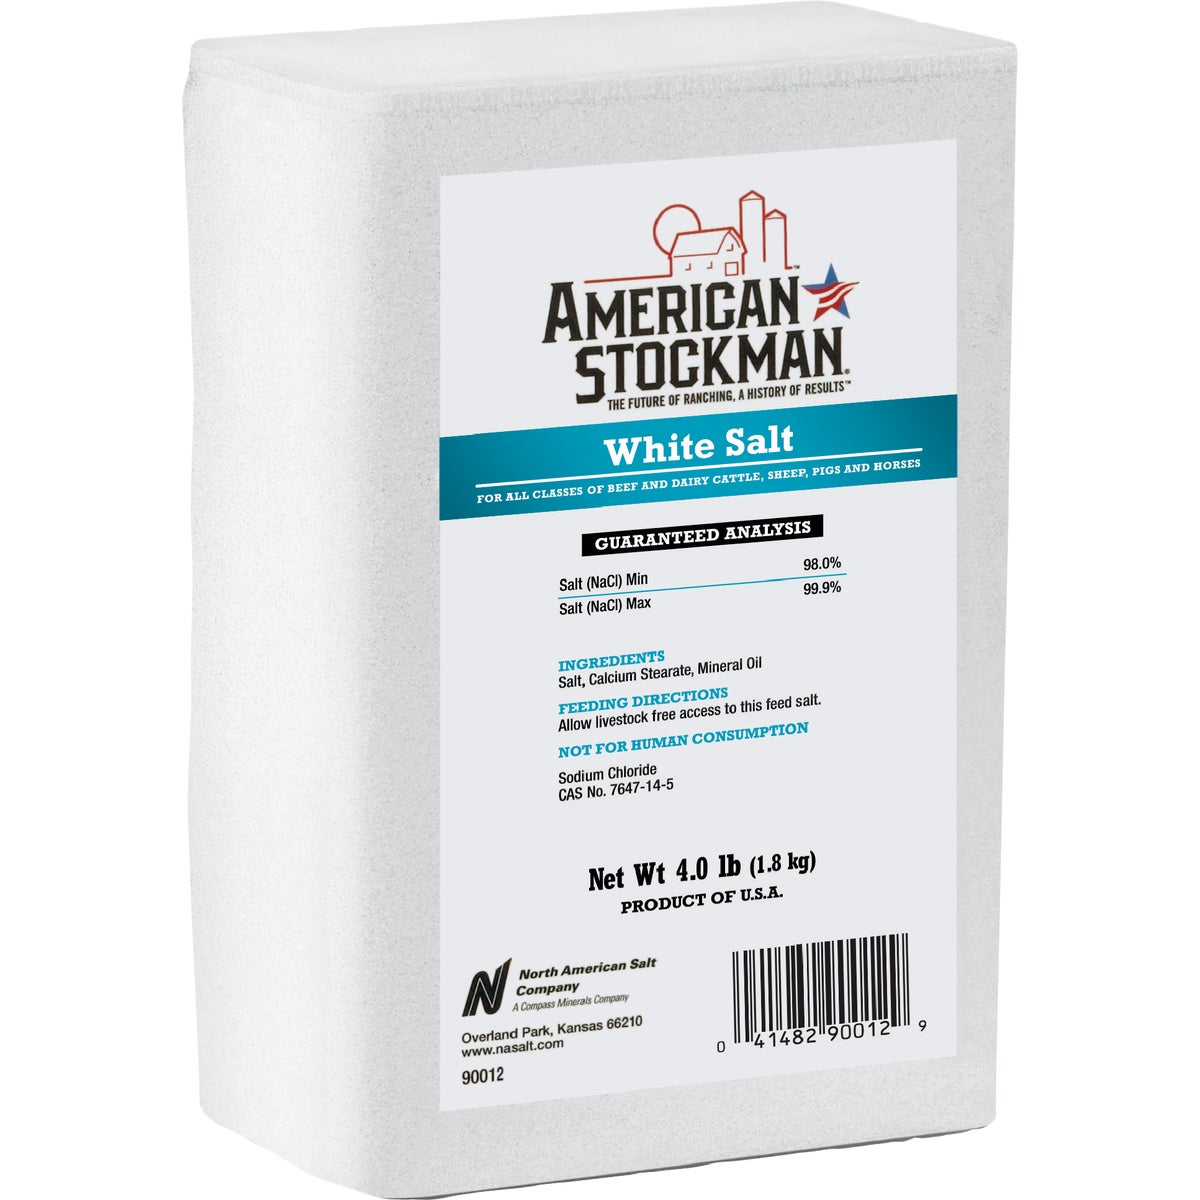 4.4LB PLAIN WHITE BRICK - 90012 by North American Salt